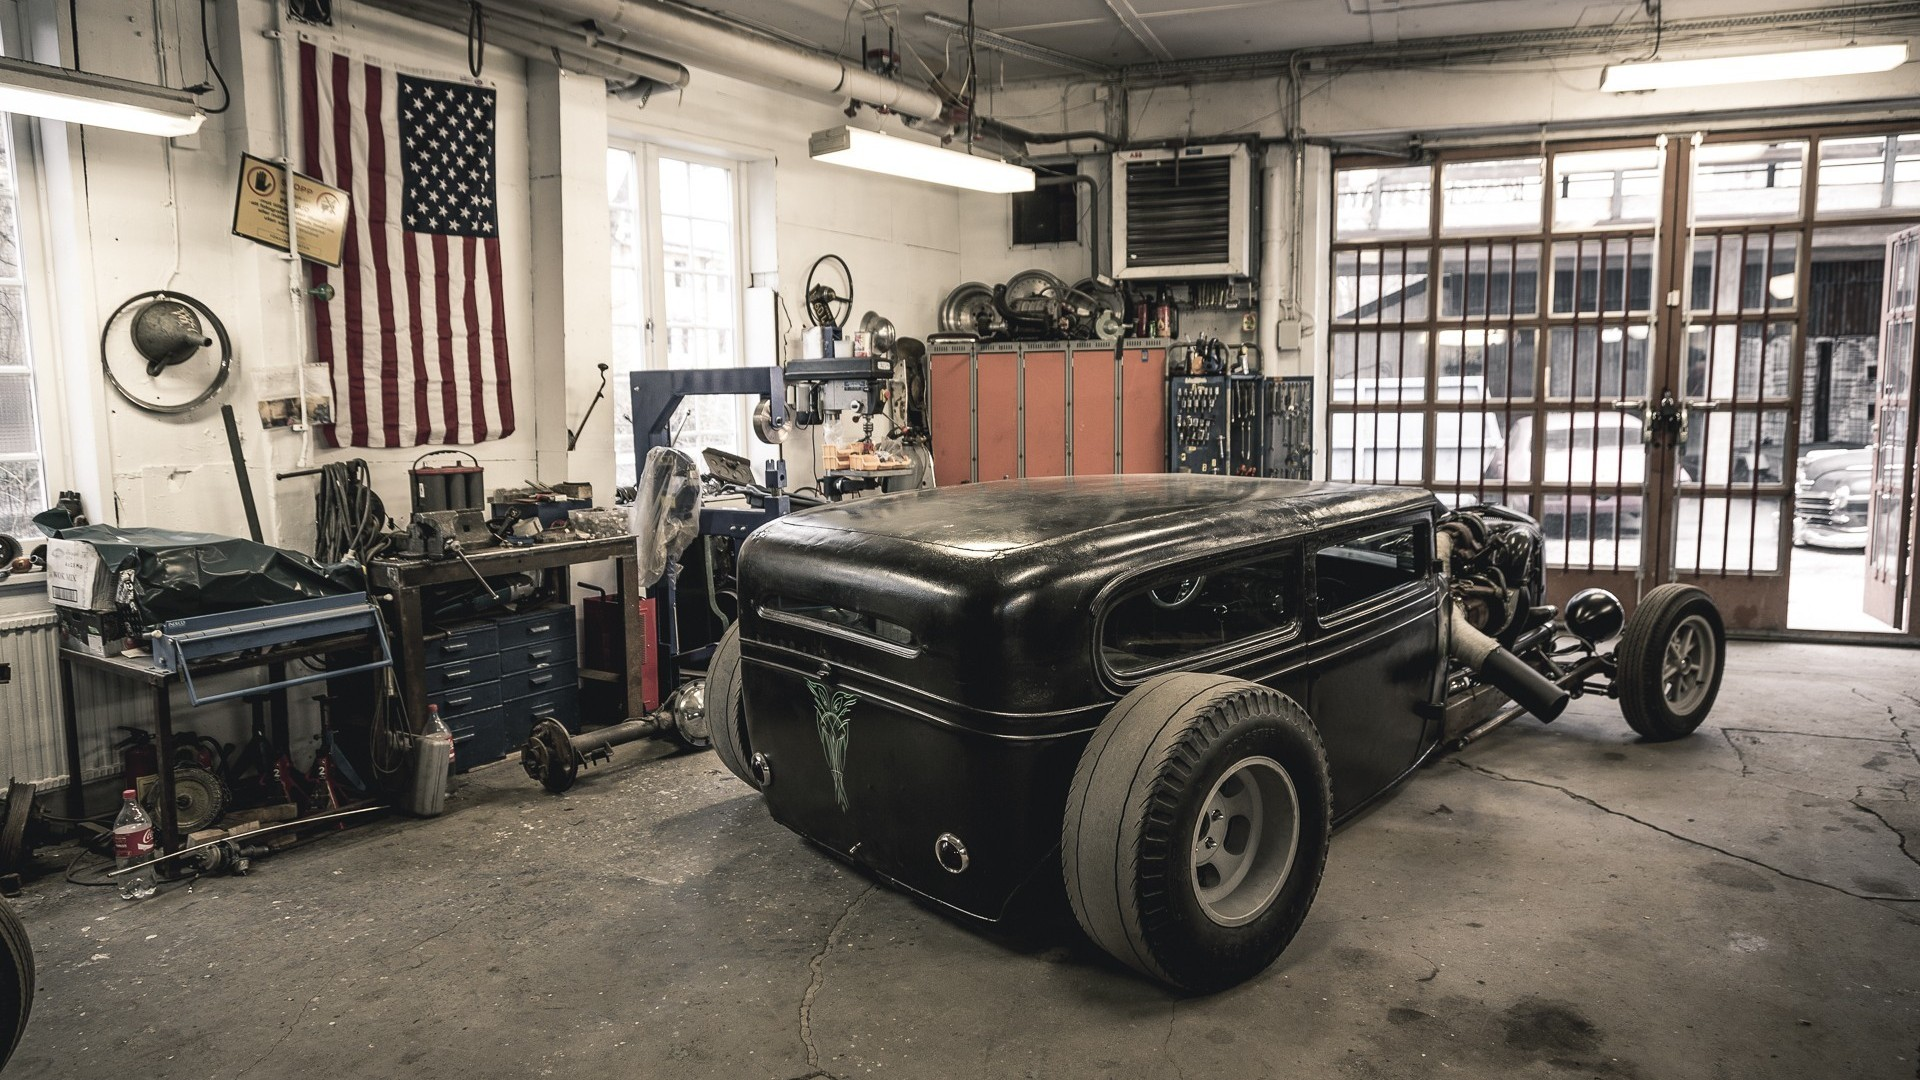 Hot Rod Garage : Hot rod garage wallpaper px hdwallsource